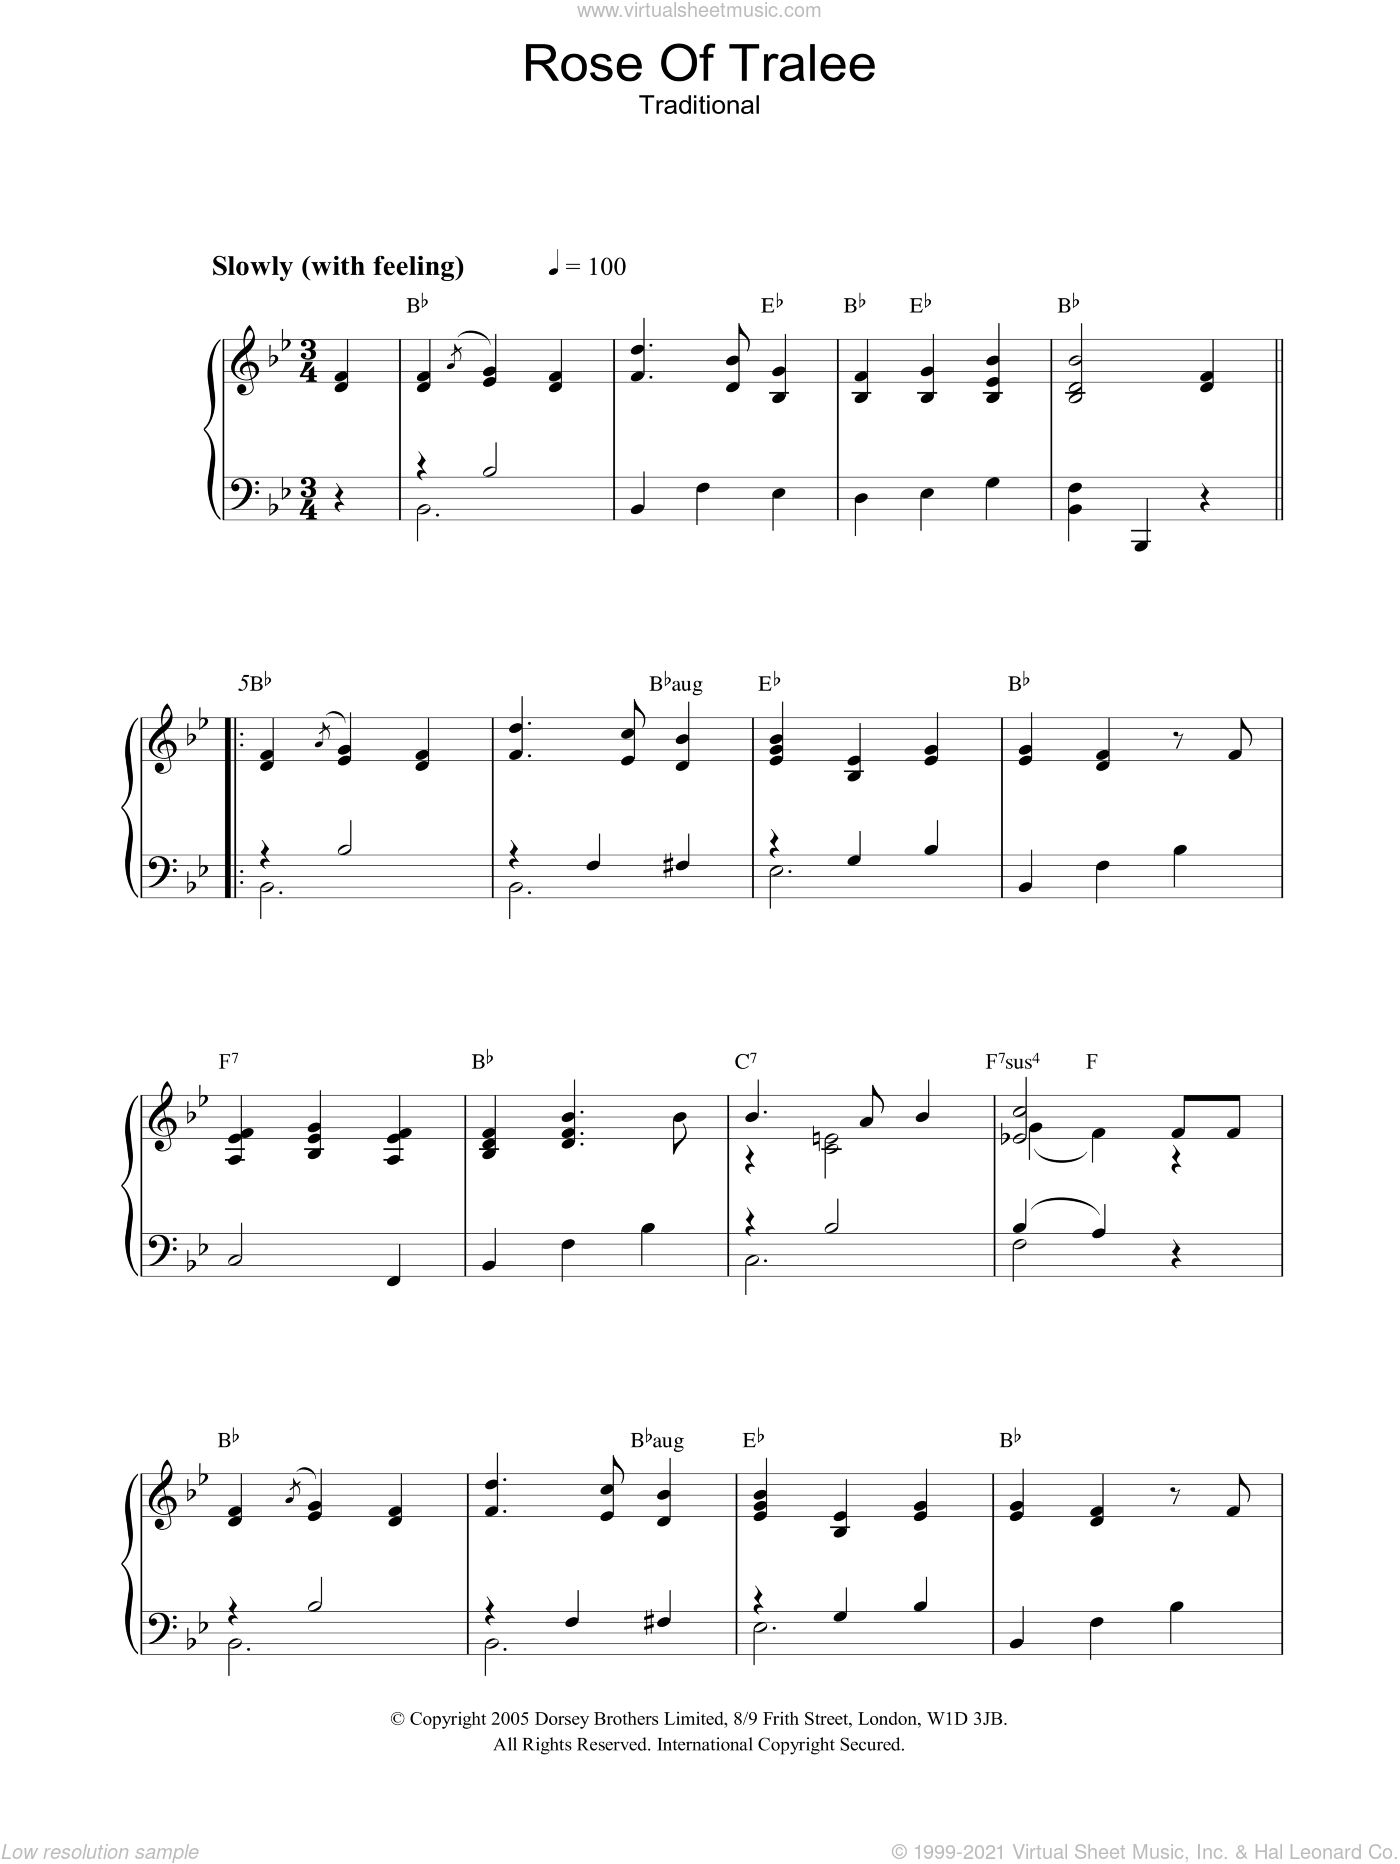 Rose Of Tralee sheet music for piano solo. Score Image Preview.